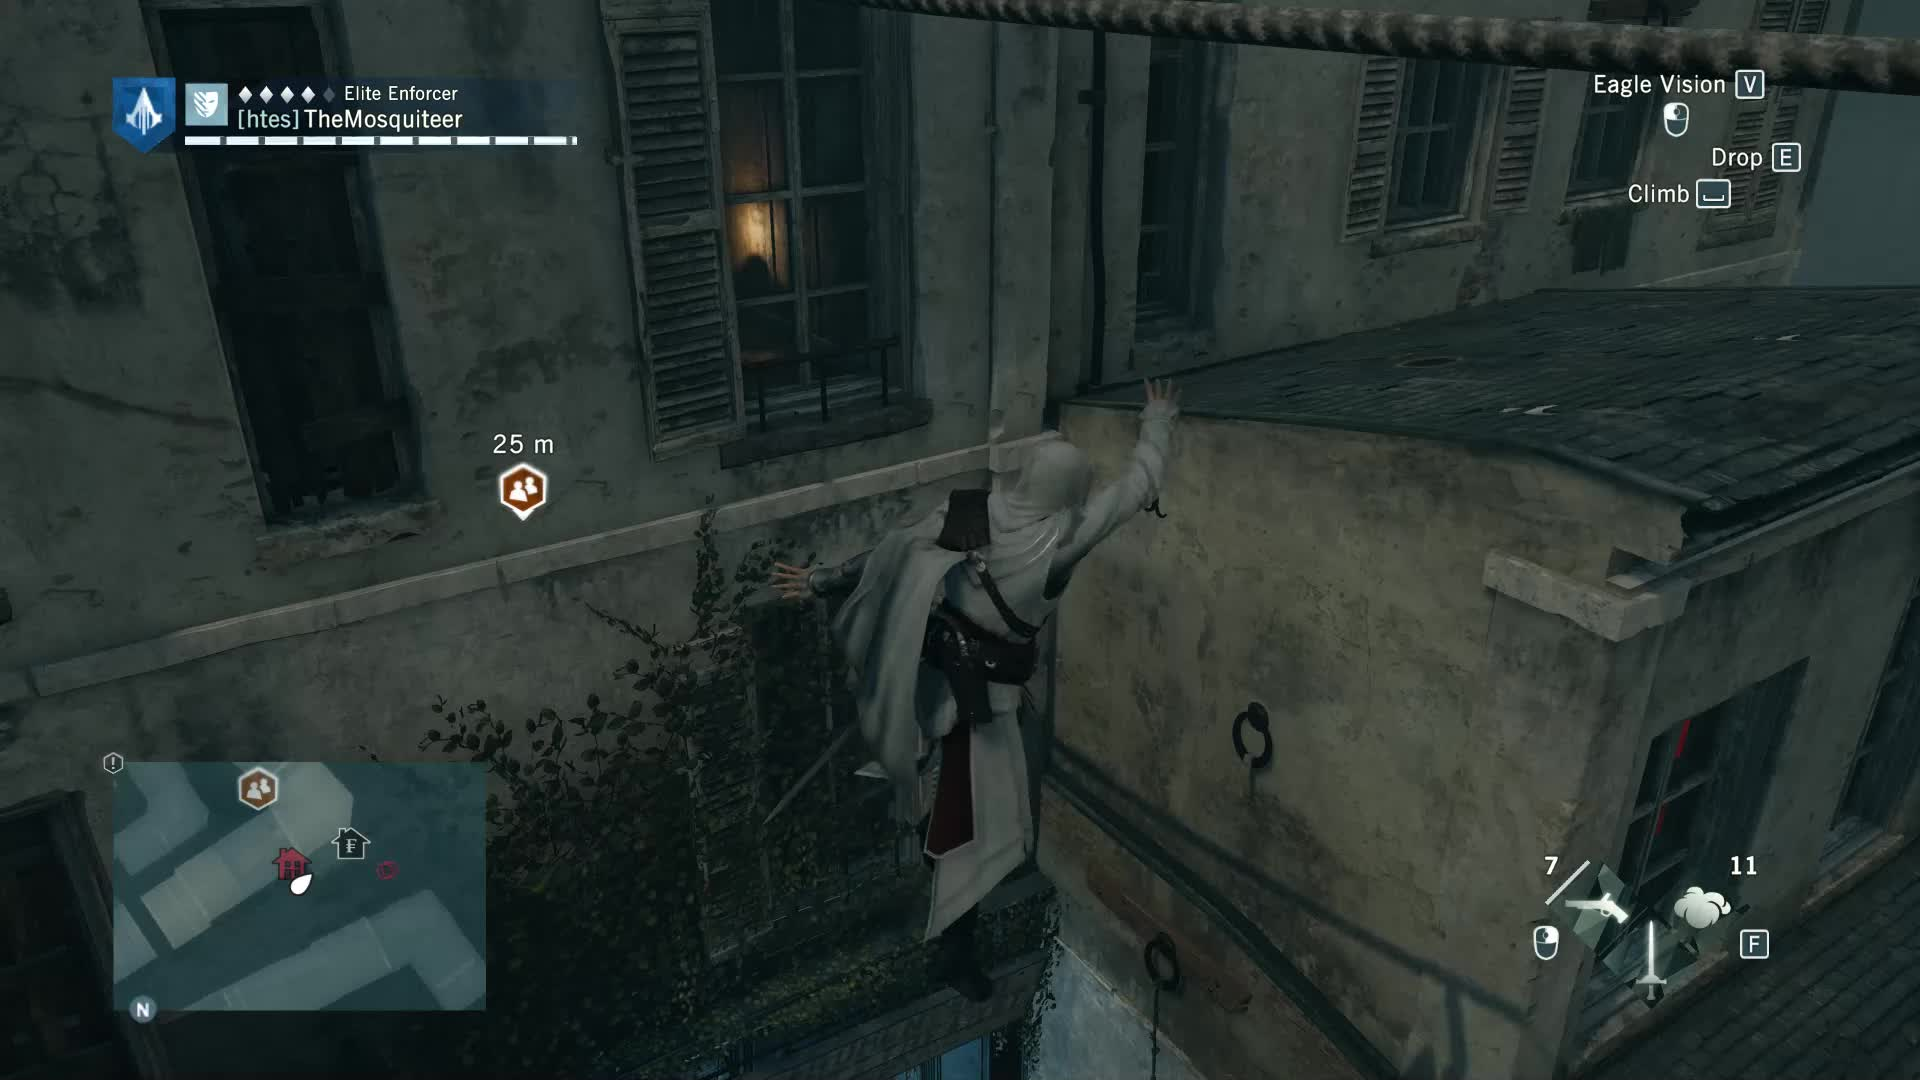 Assassin's Creed® Unity 2019-09-15 18-23-12 Trim GIFs